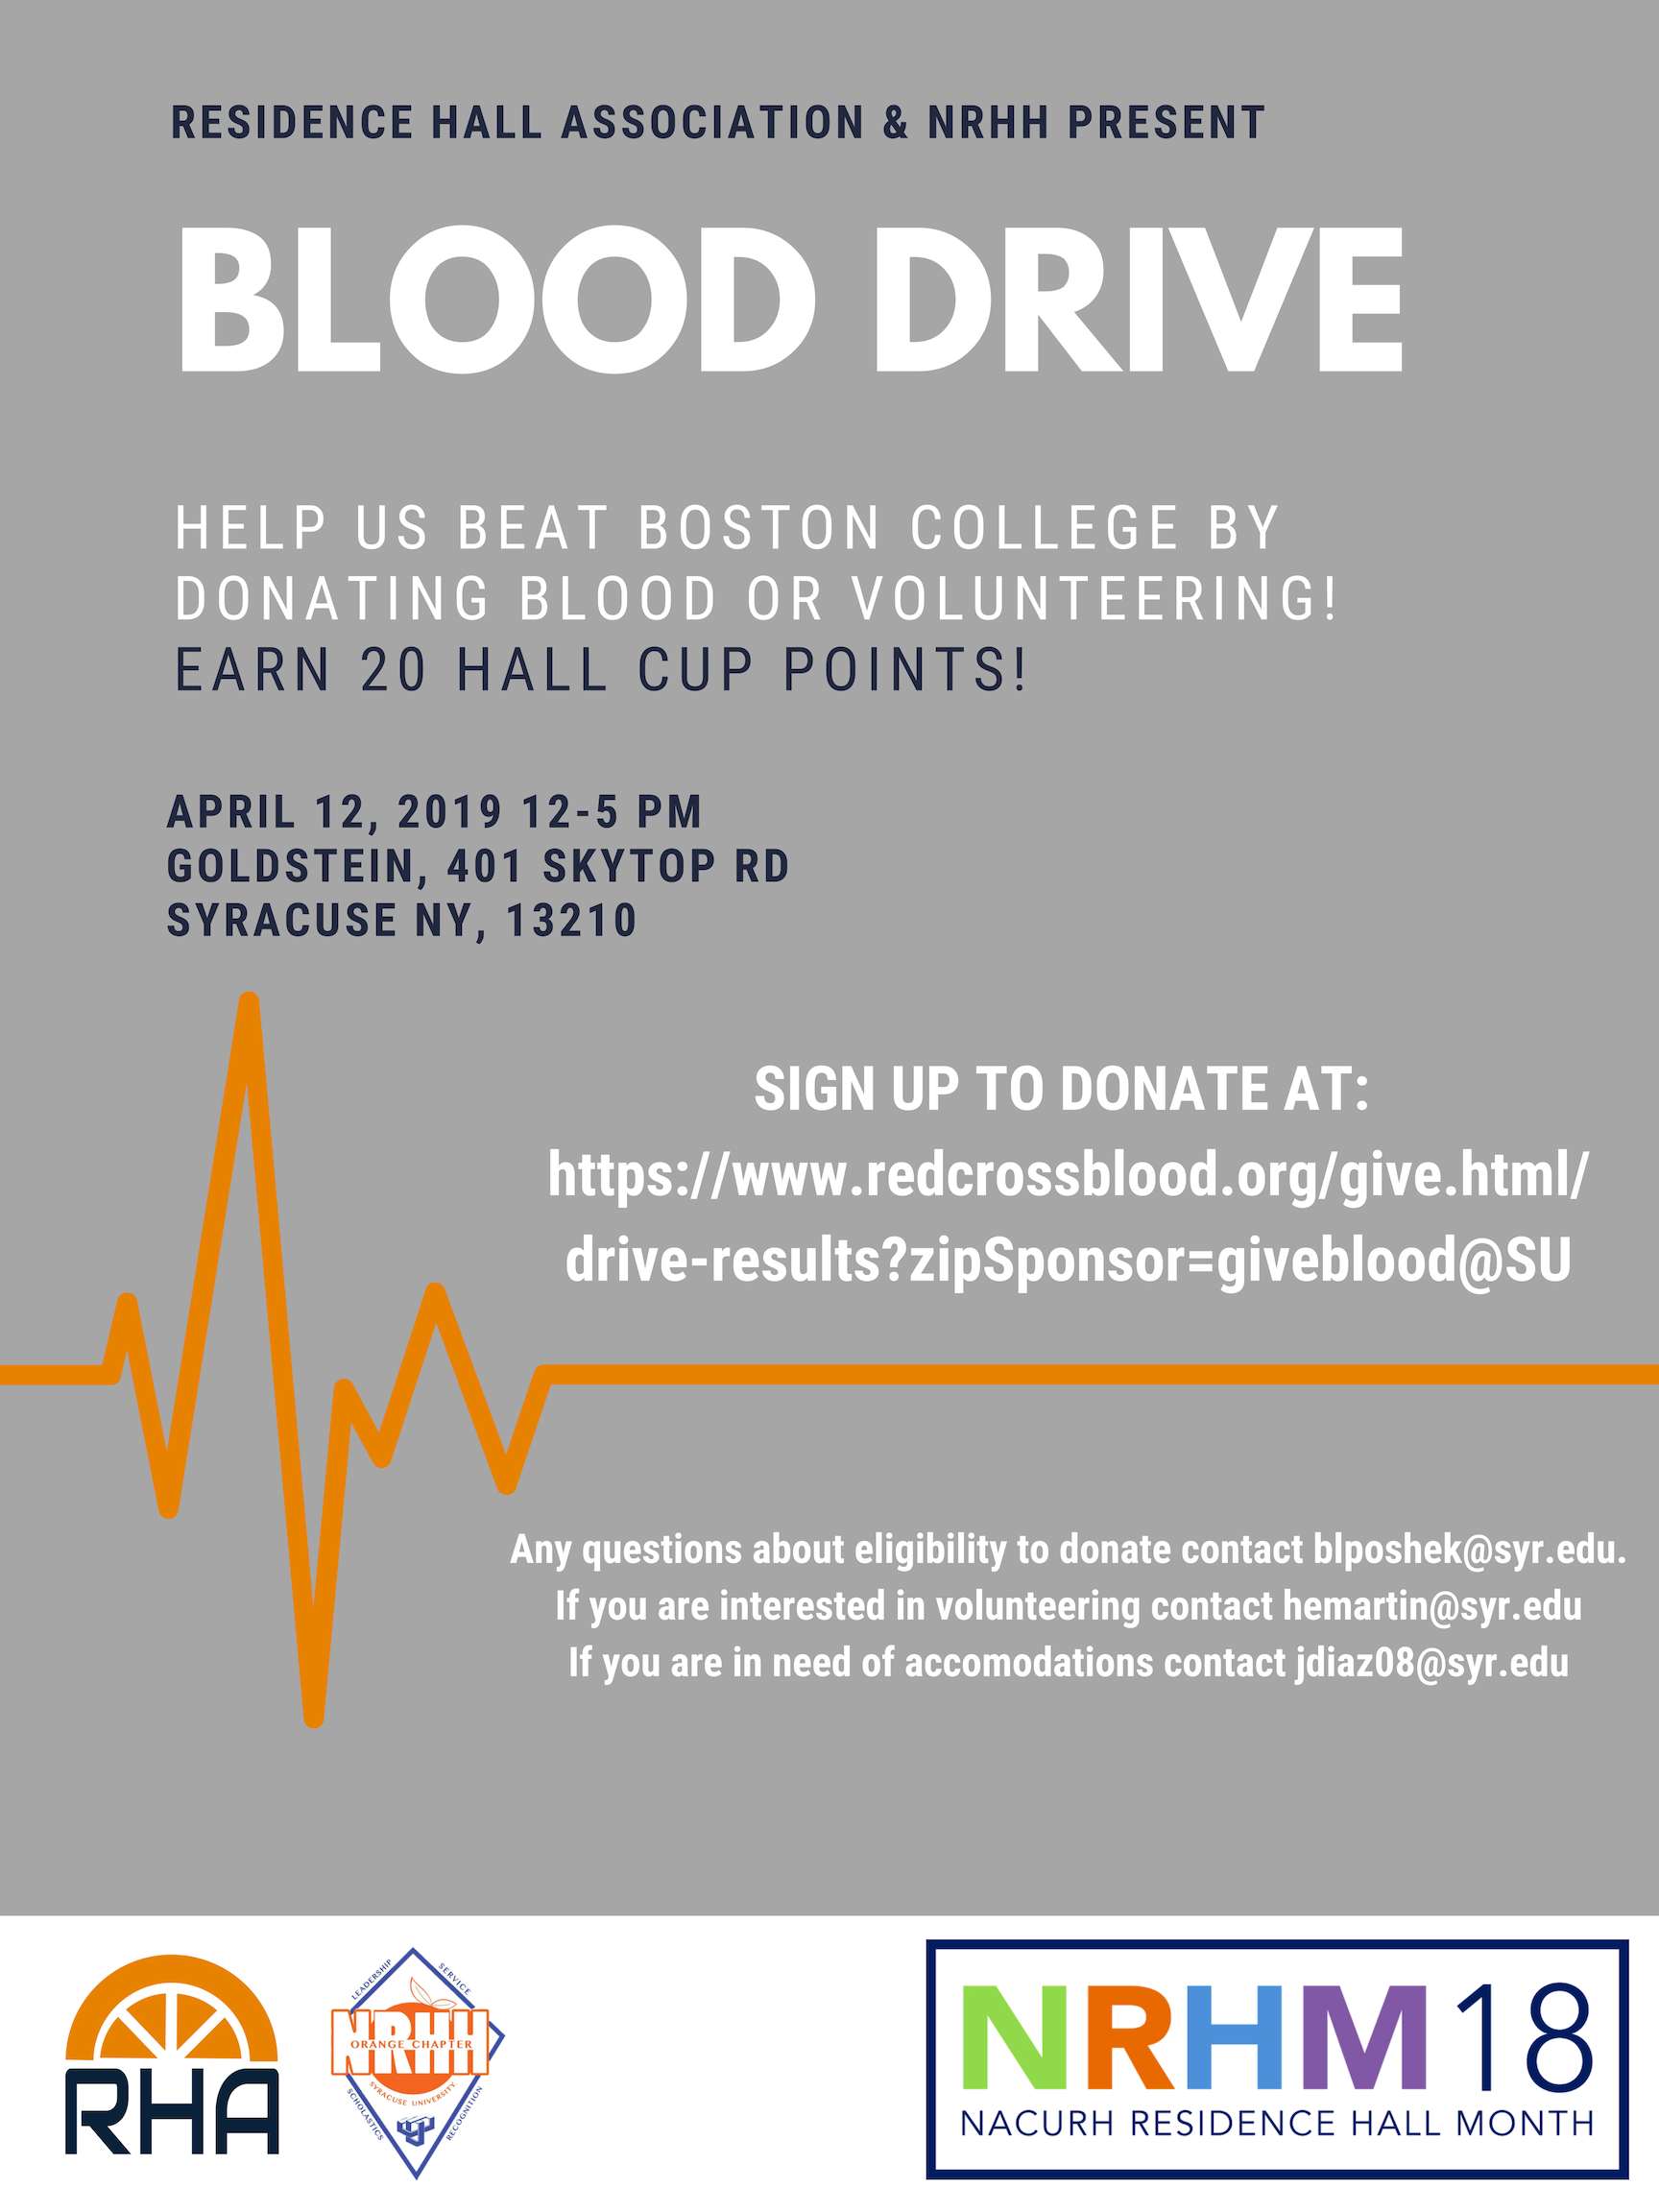 Syracuse RHA blood drive